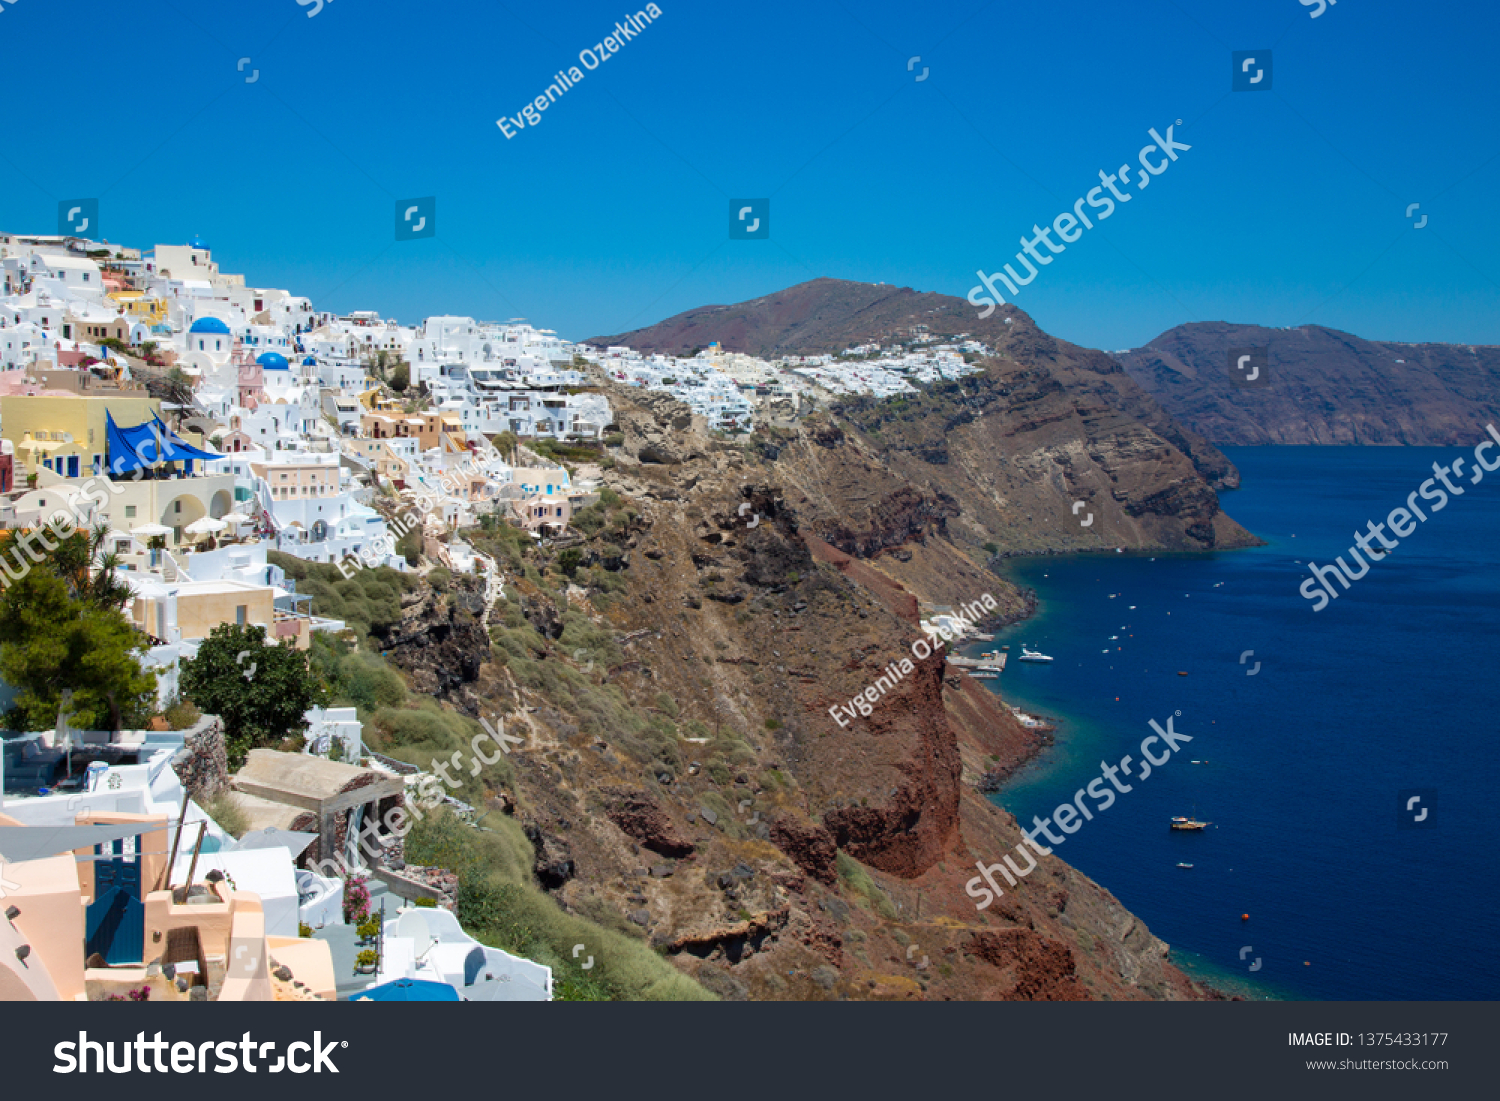 stock-photo-santorini-crete-greece-july-